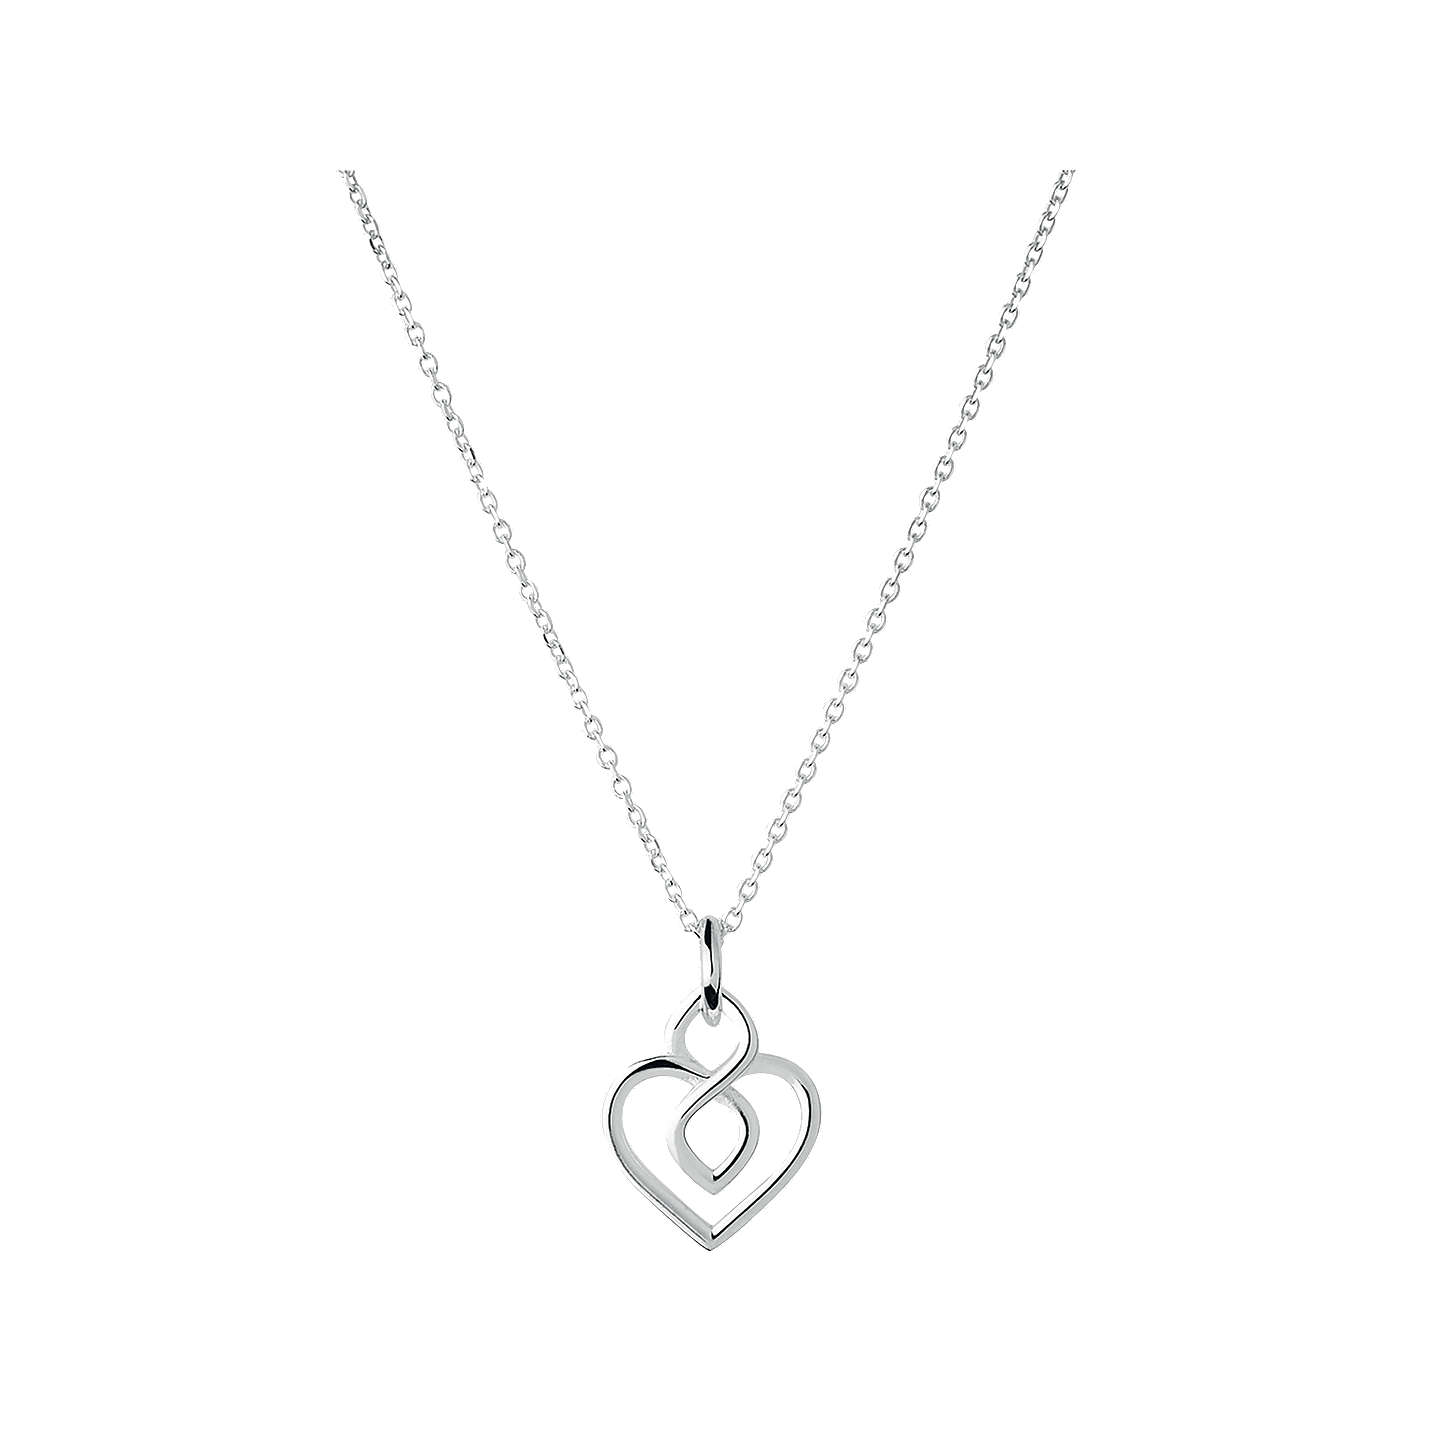 Links of london infinite love sterling silver pendant necklace buylinks of london infinite love sterling silver pendant necklace silver online at johnlewis aloadofball Image collections